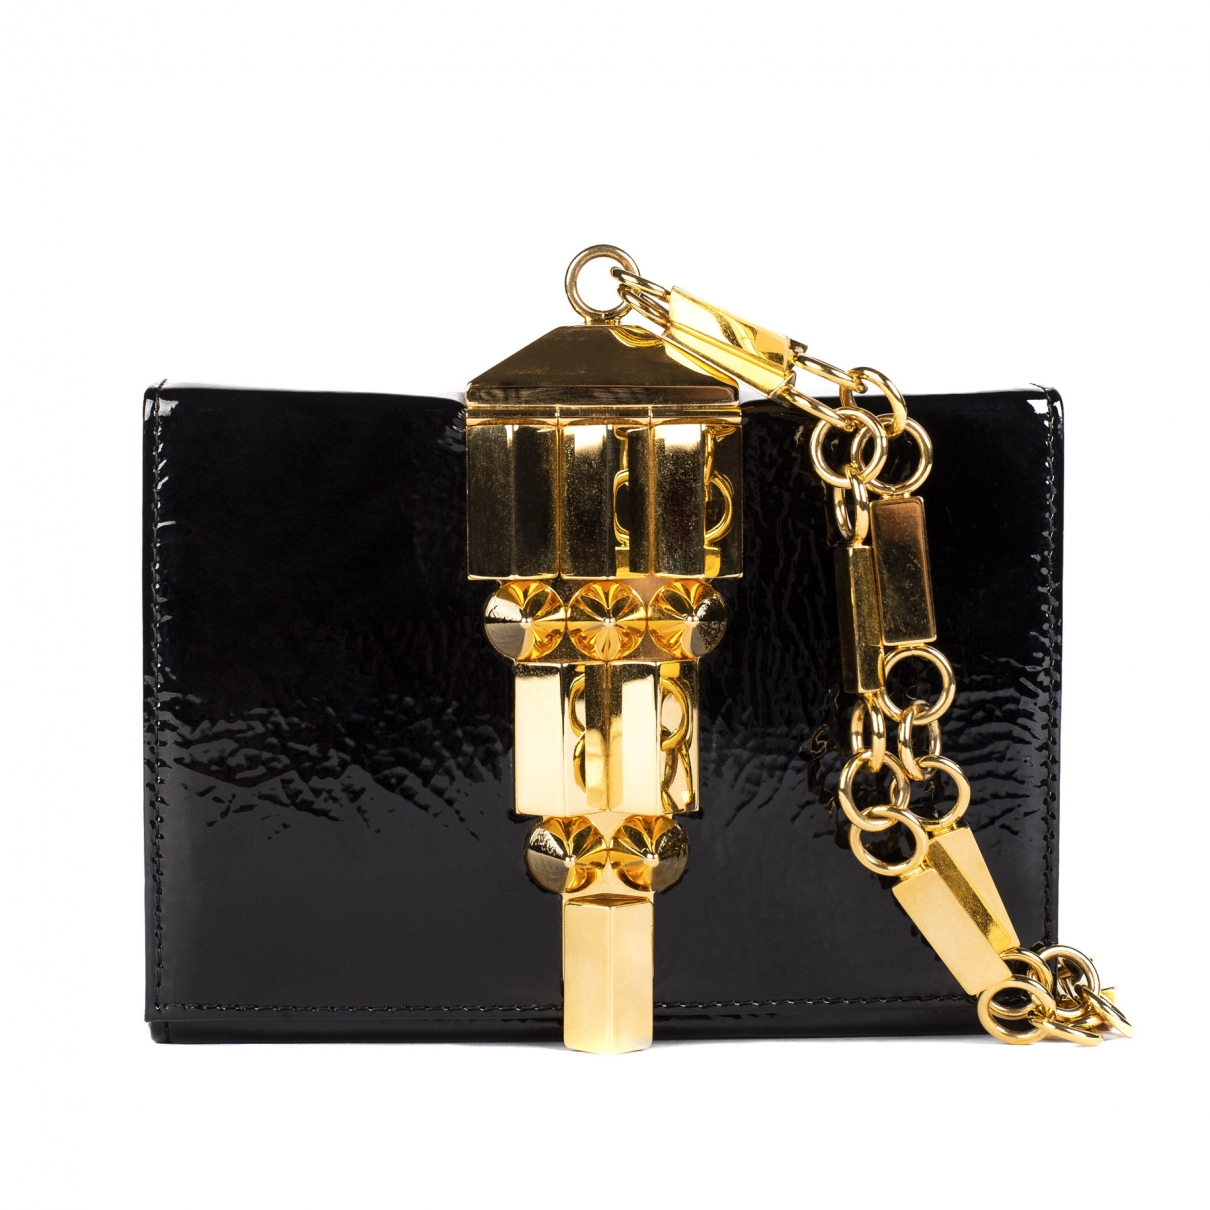 Giuseppe Zanotti \N Black Patent leather Clutch bag for Women \N